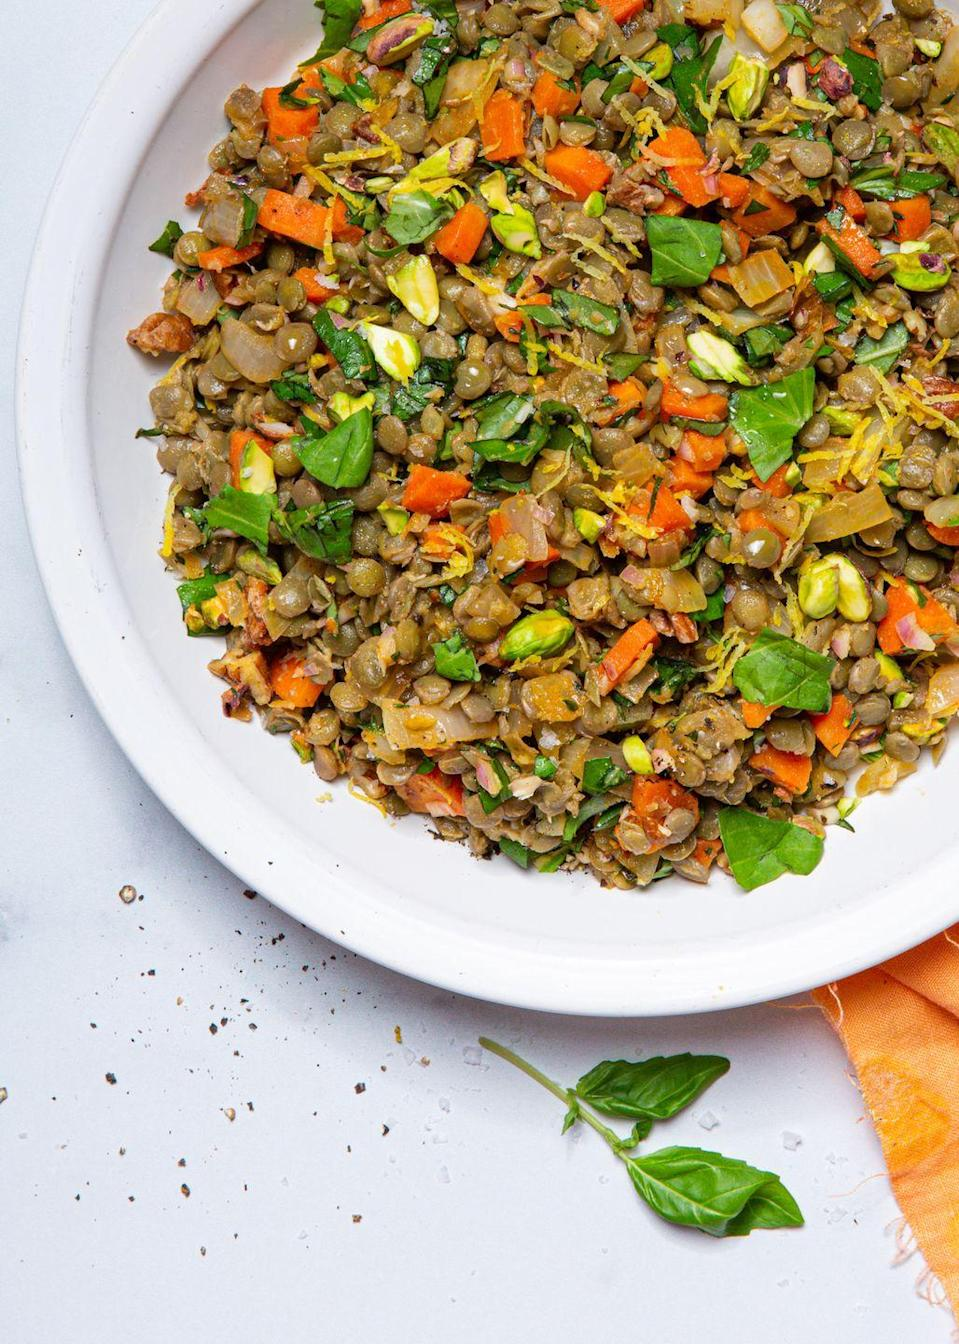 "<p>You'll be bowled over by flavor!</p><p>Get the recipe from <a href=""https://www.delish.com/cooking/recipe-ideas/a32292934/lentil-salad-recipe/"" rel=""nofollow noopener"" target=""_blank"" data-ylk=""slk:Delish"" class=""link rapid-noclick-resp"">Delish</a>.<br></p>"